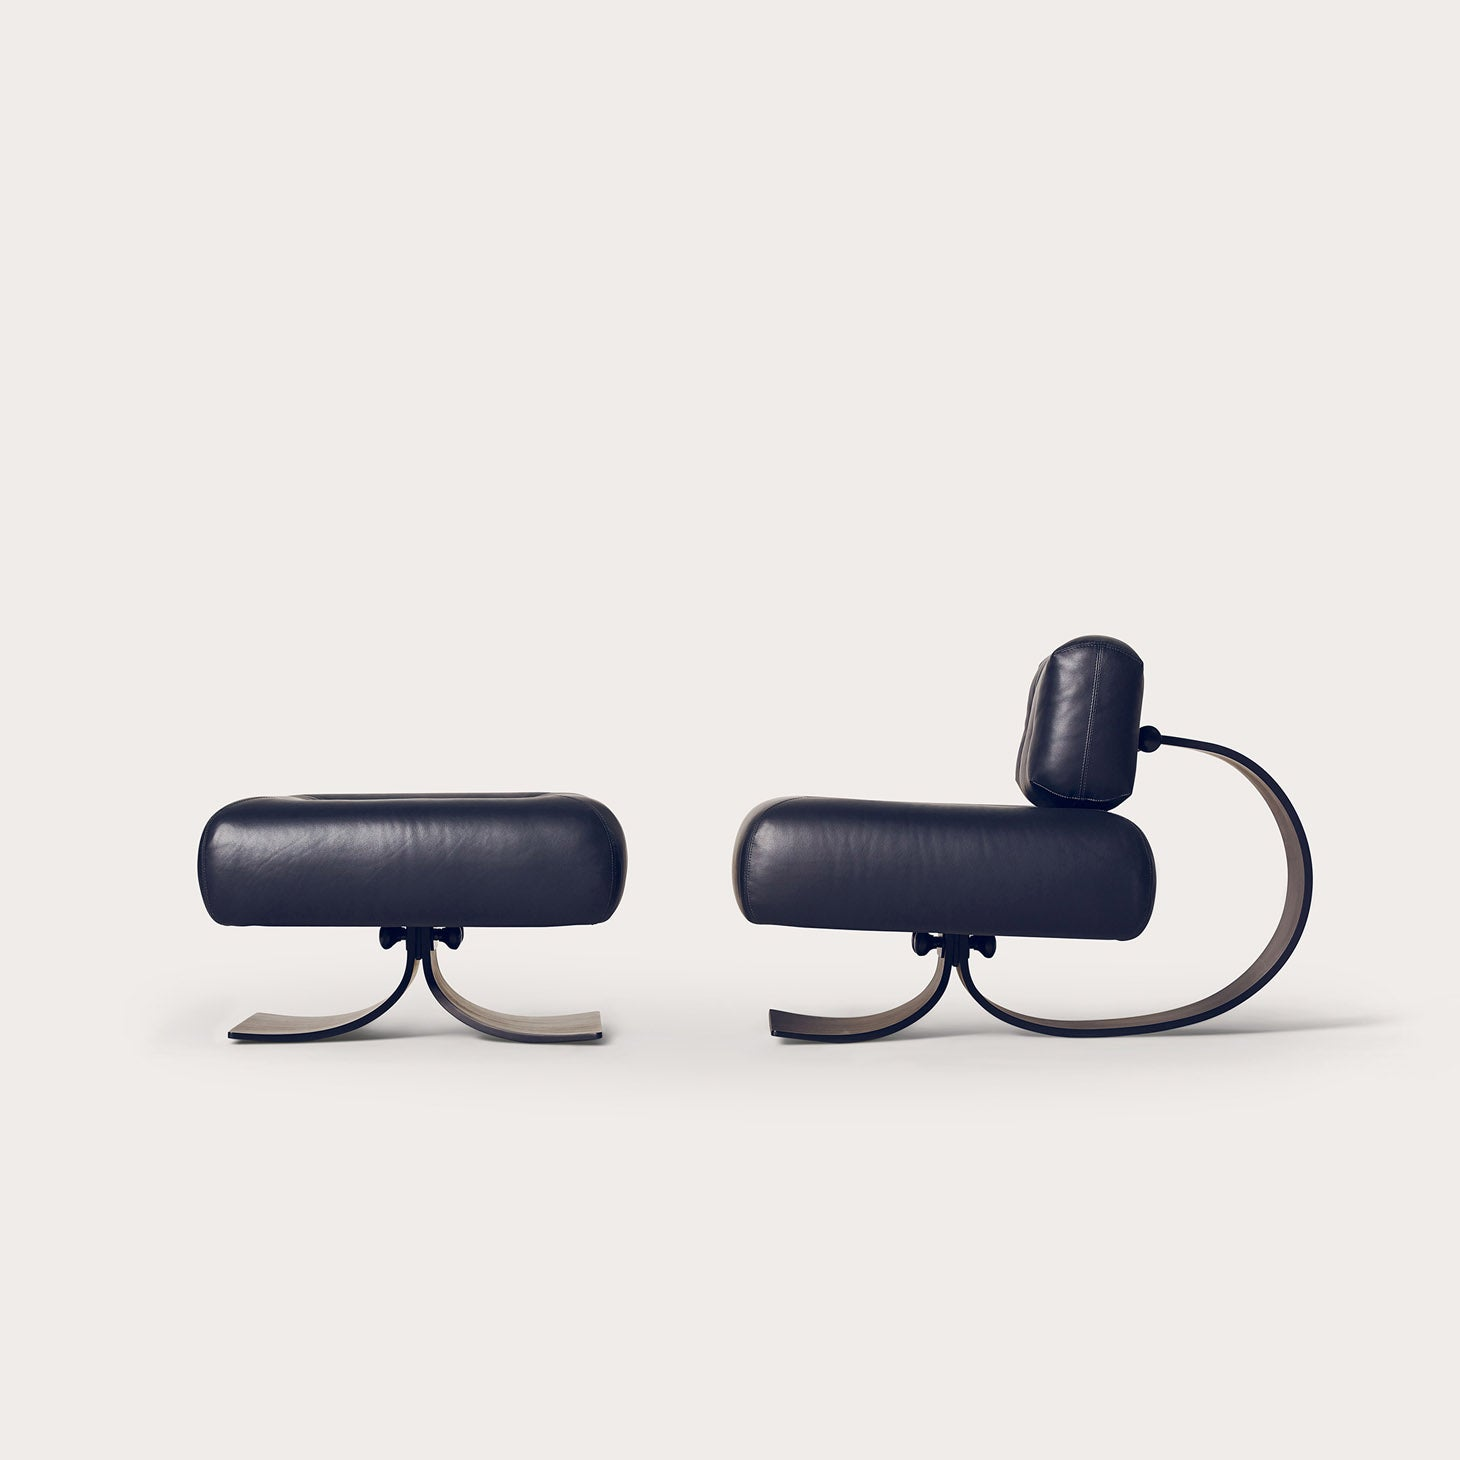 Alta Seating Oscar Niemeyer Designer Furniture Sku: 003-240-10005